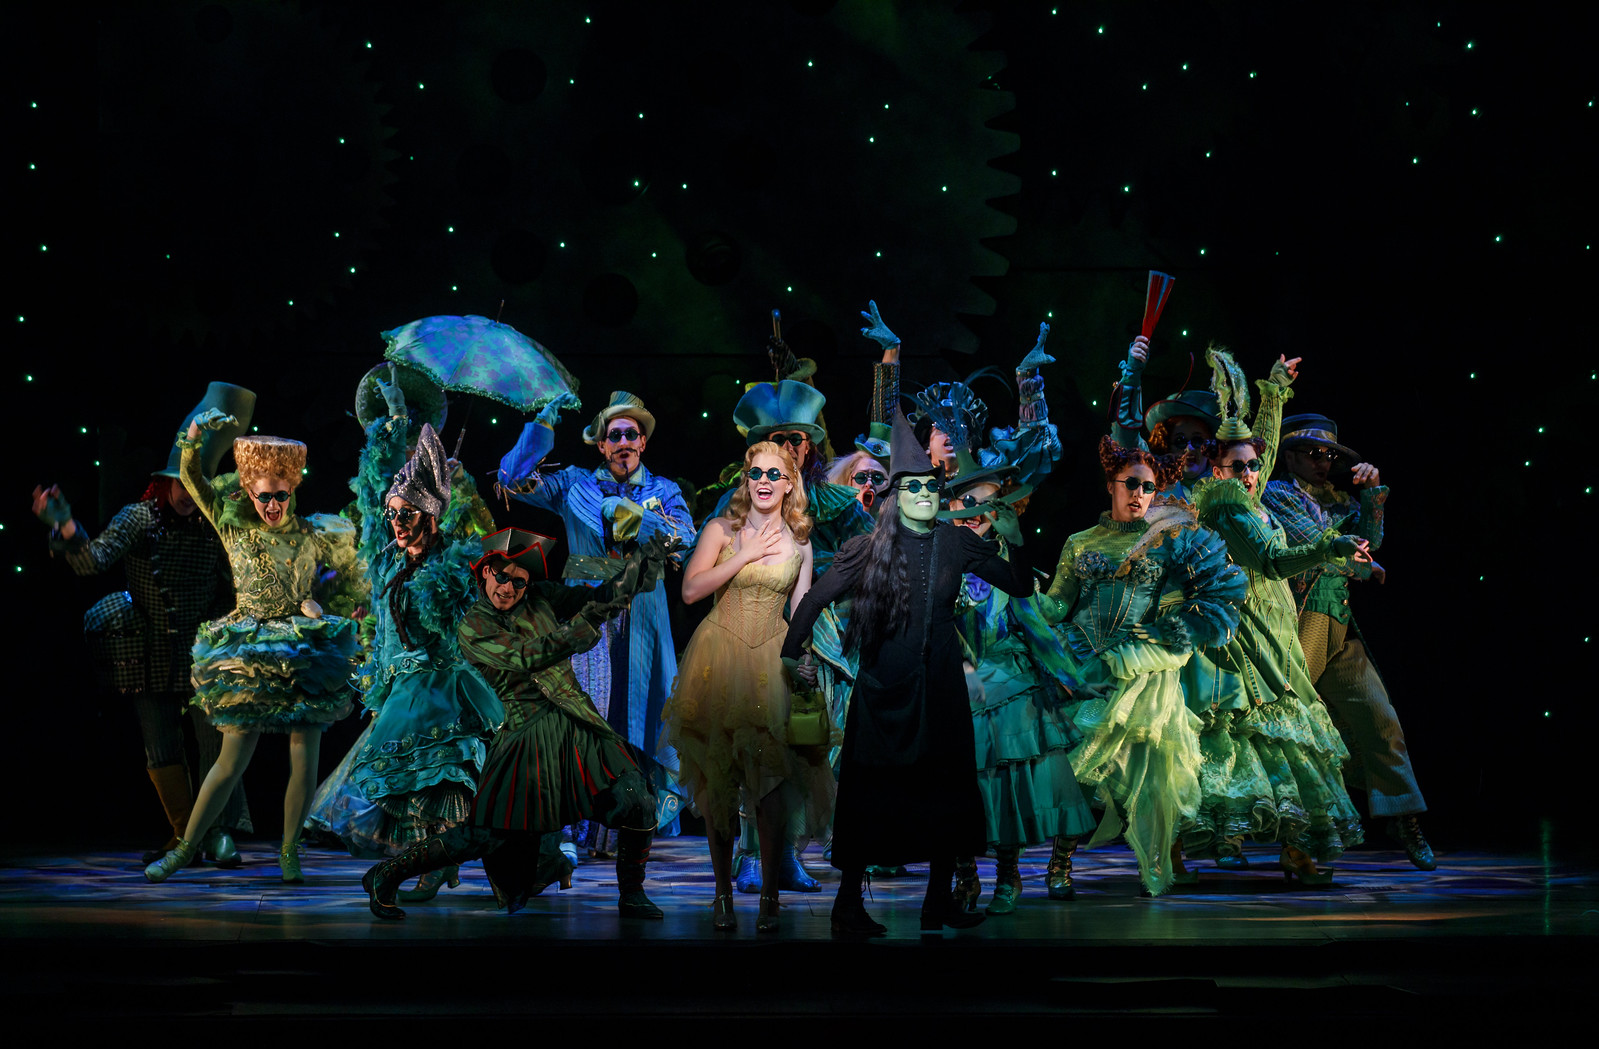 Broadway In Detroit: WICKED Returns To The Detroit Opera House August 8 - September 2, 2018 // (article via Wading in Big Shoe) // Photo by Joan Marcus